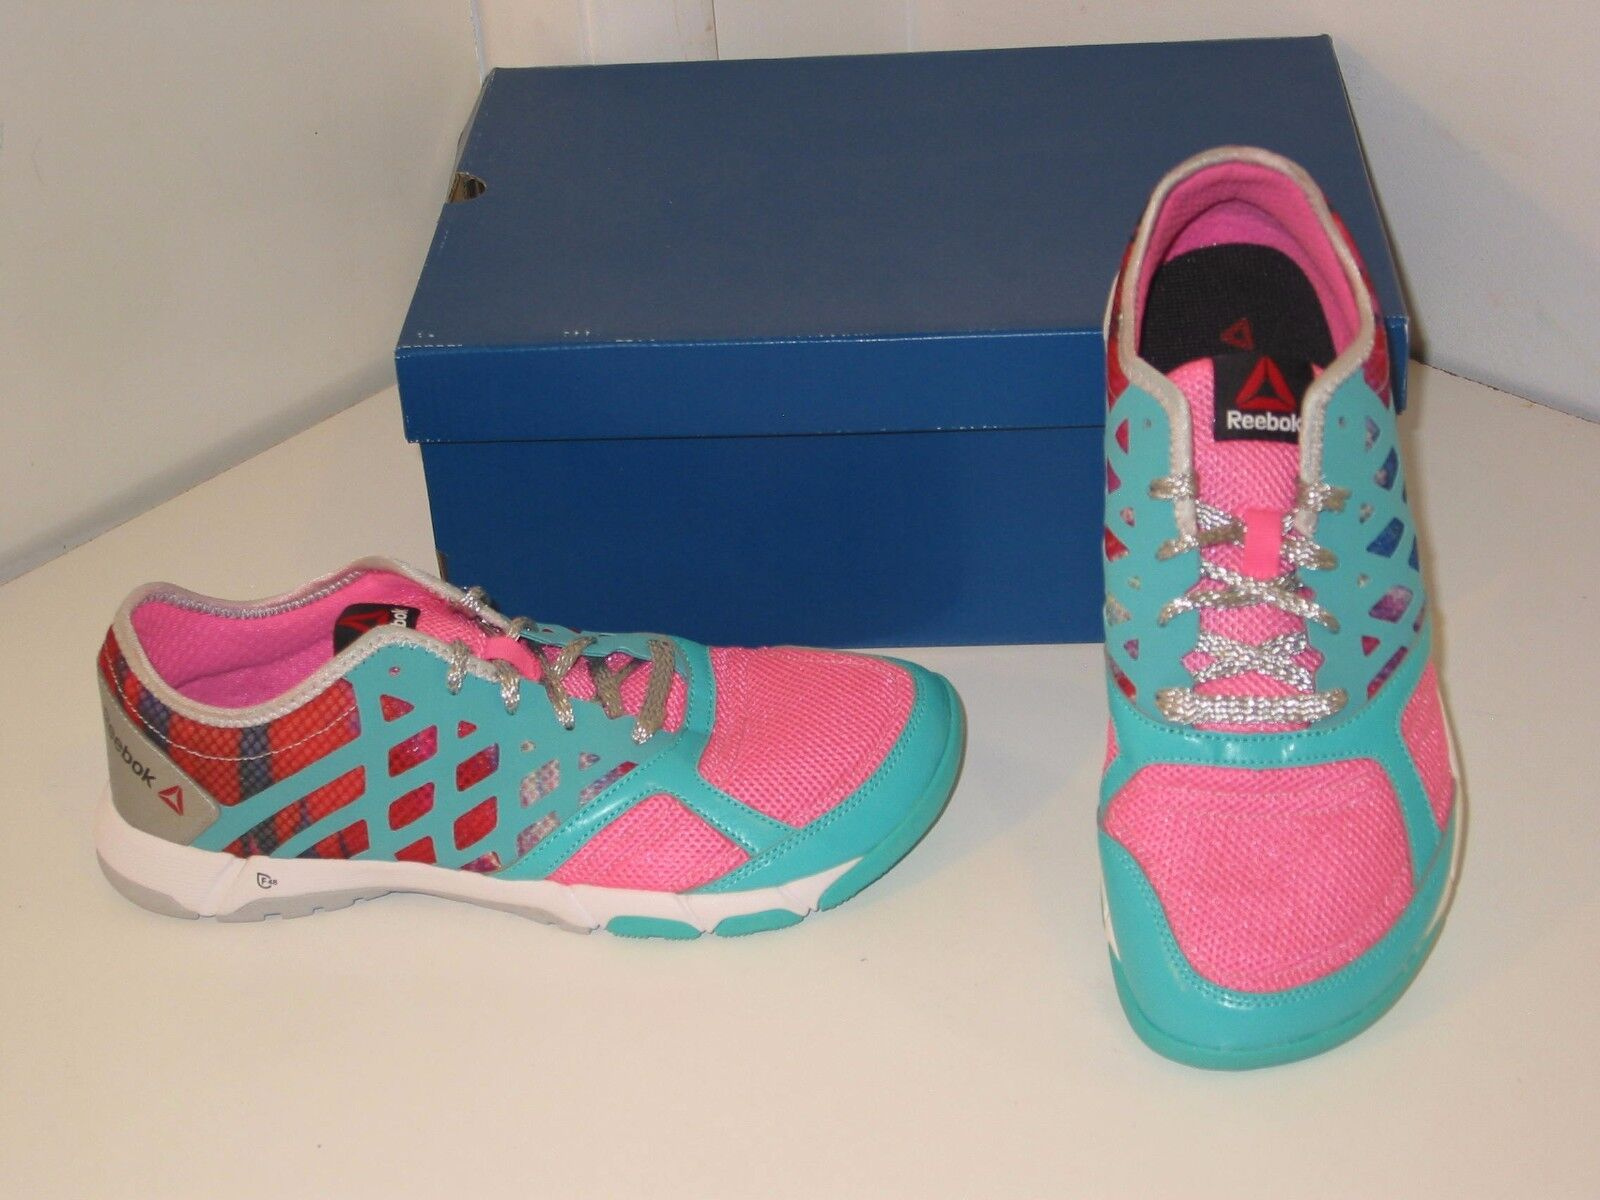 Reebok One Trainer 2.0 GR Running Training Pink & Teal Sneakers Schuhes Damenschuhe 9.5